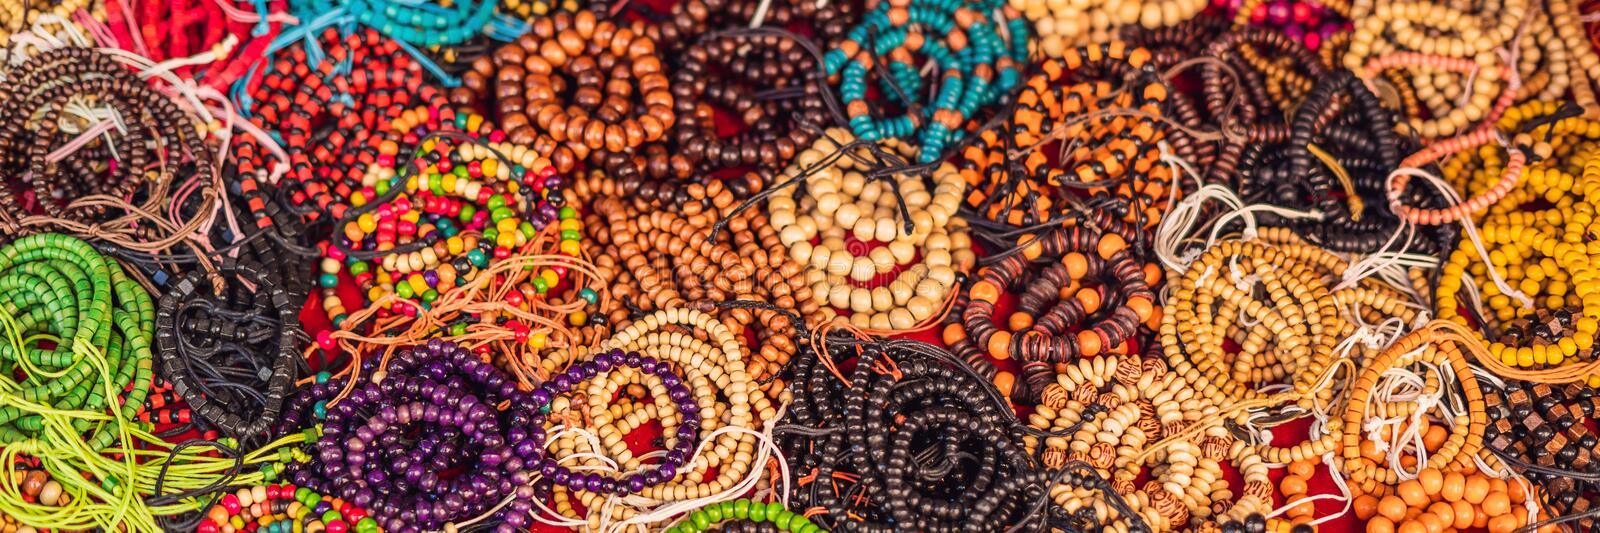 Handmade colorful bracelets in a local market of Bali, Indonesia BANNER, long format. Handmade colorful bracelets in a local market of Bali, Indonesia. BANNER stock photo